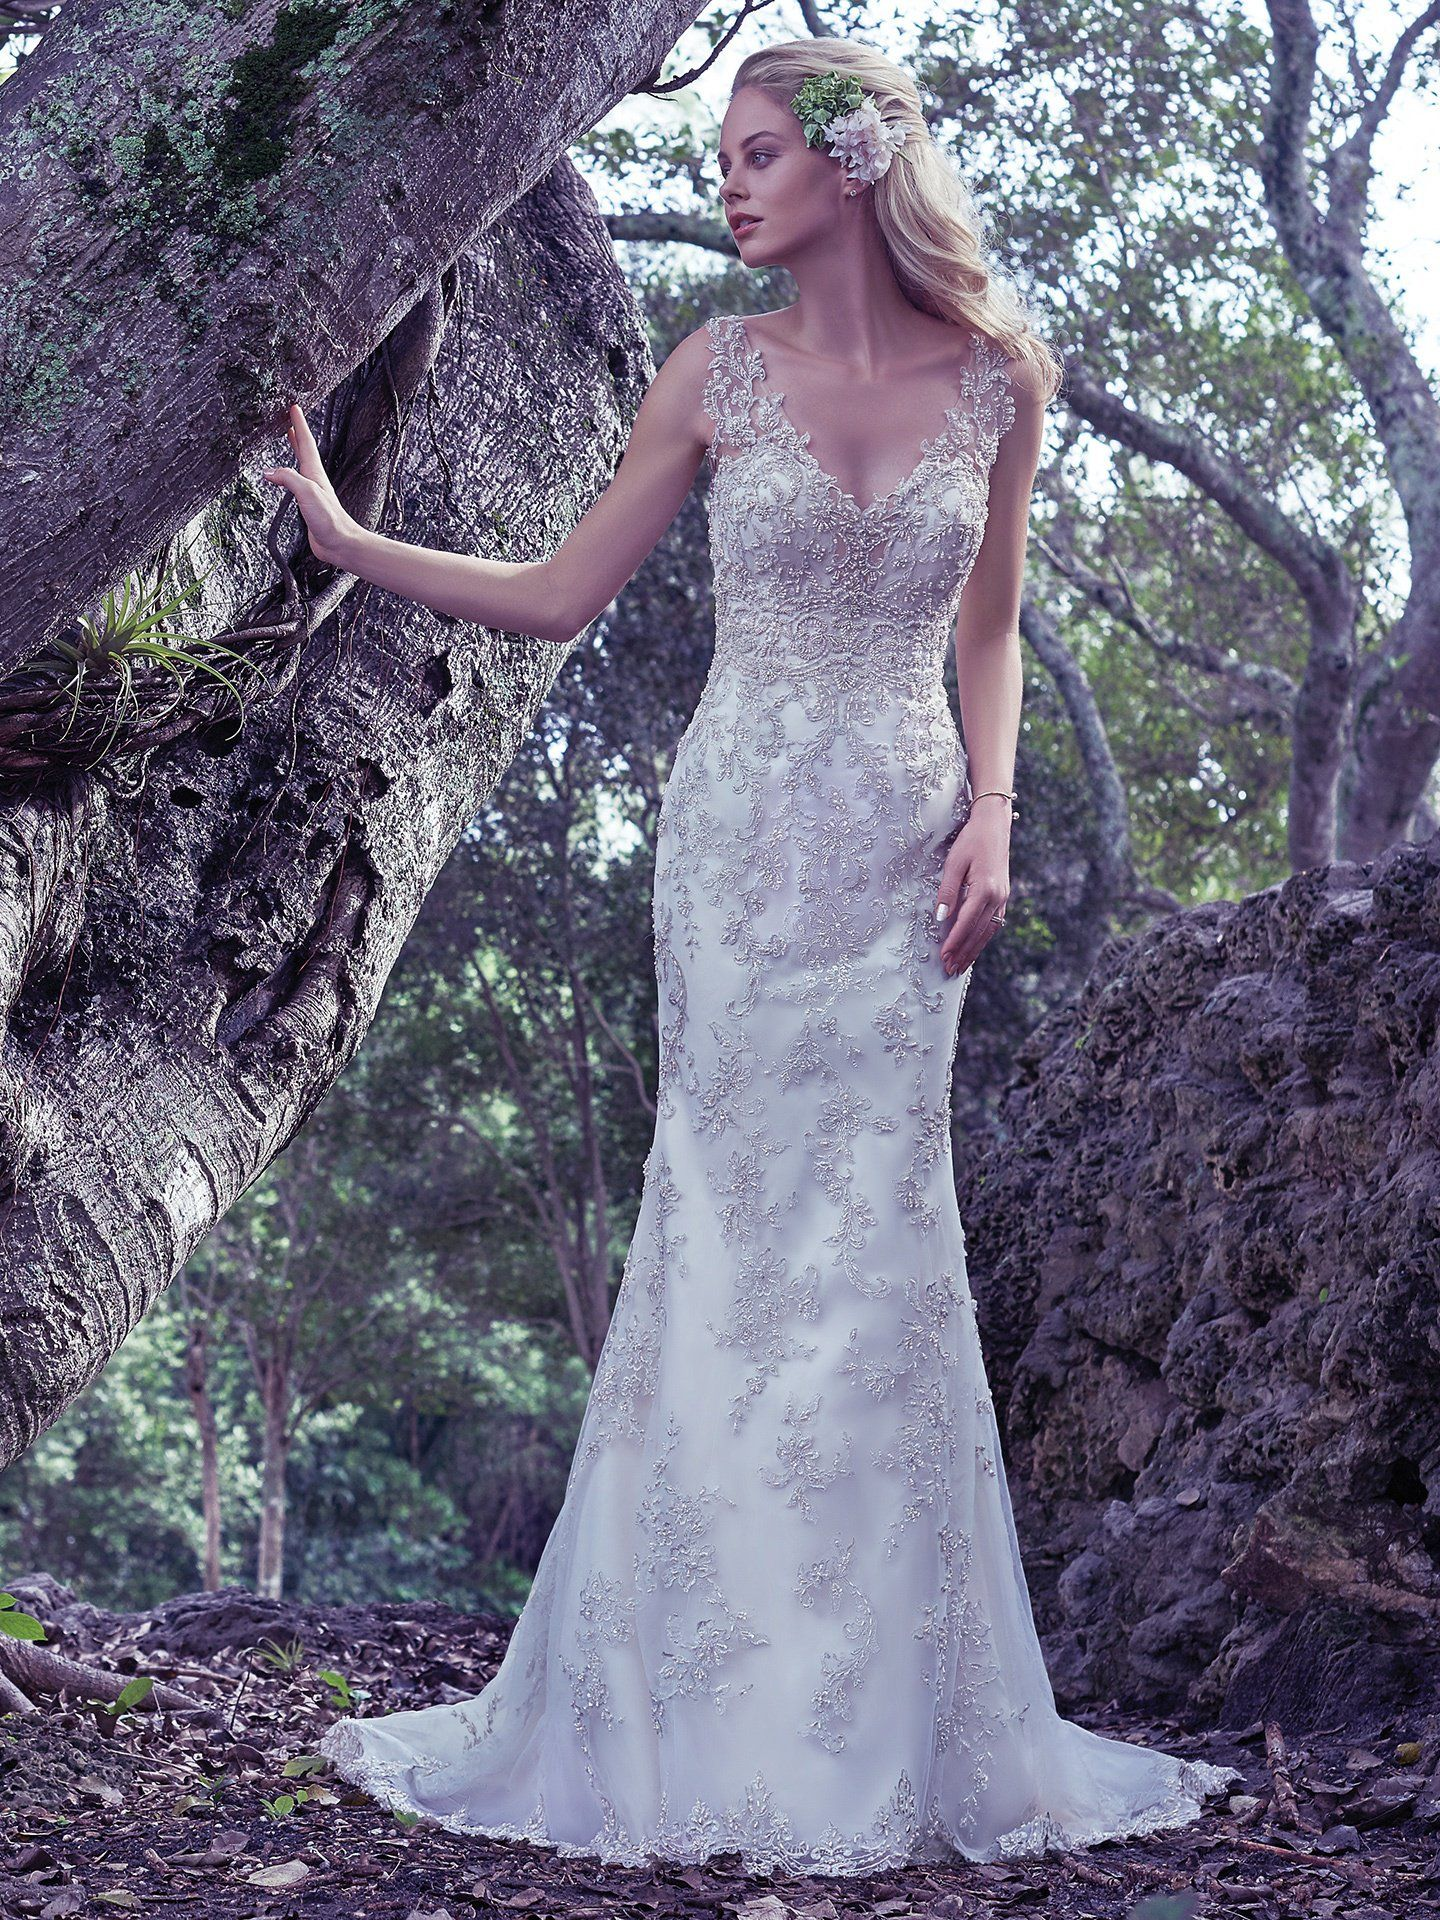 Maggie Sottero Wedding Dresses | Illusions, Maggie sottero and ...